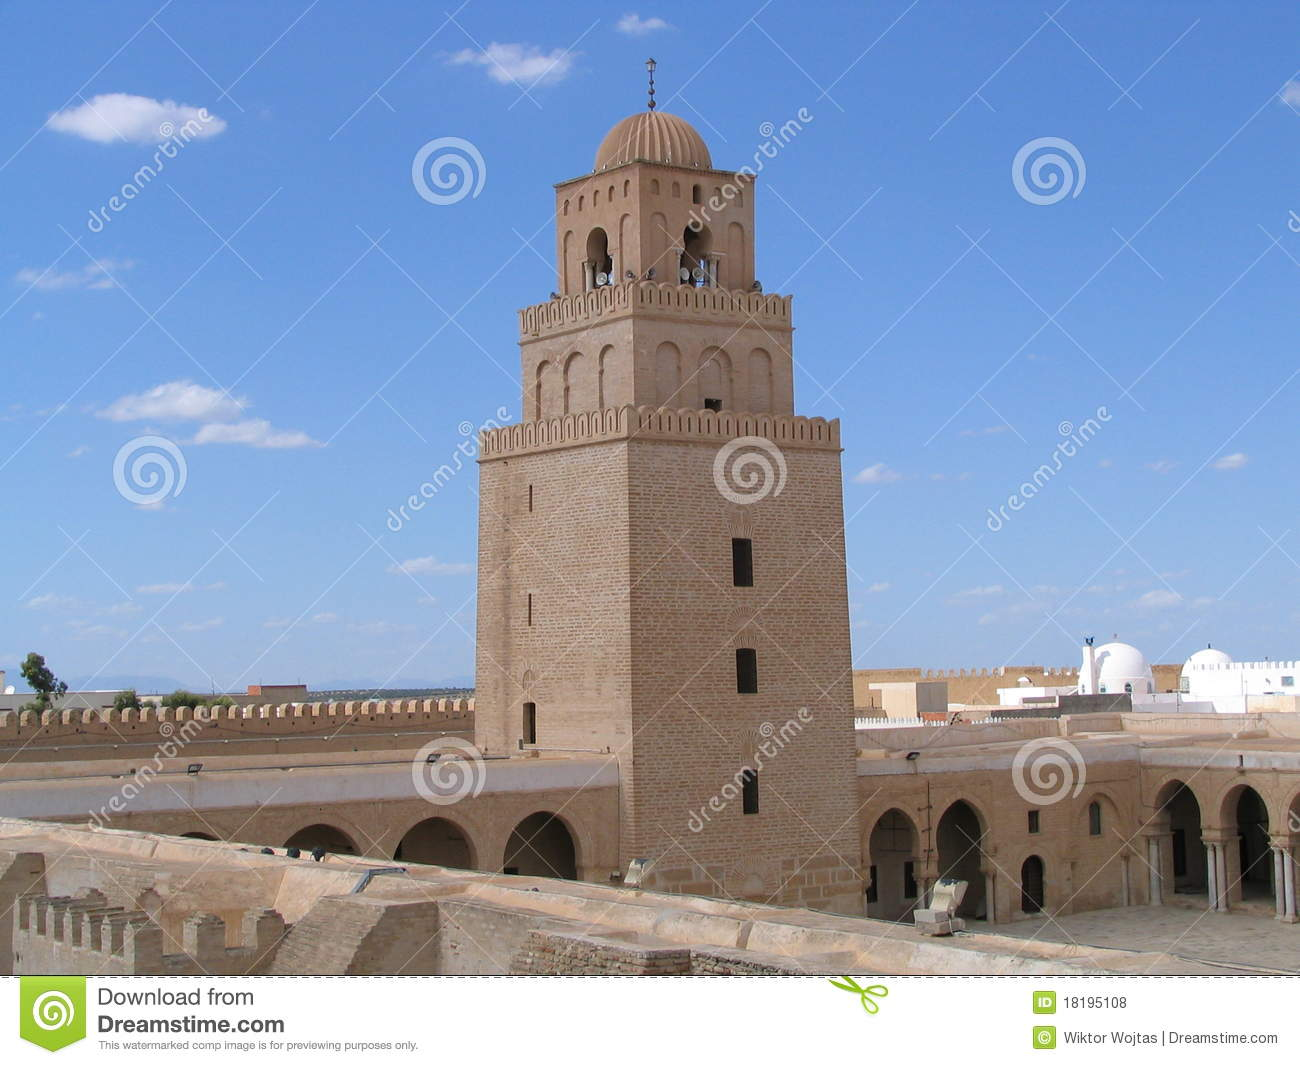 Kairouan Tunisia  city images : The Great Mosque in Kairouan Tunisia , the fourth holy city of Islam ...